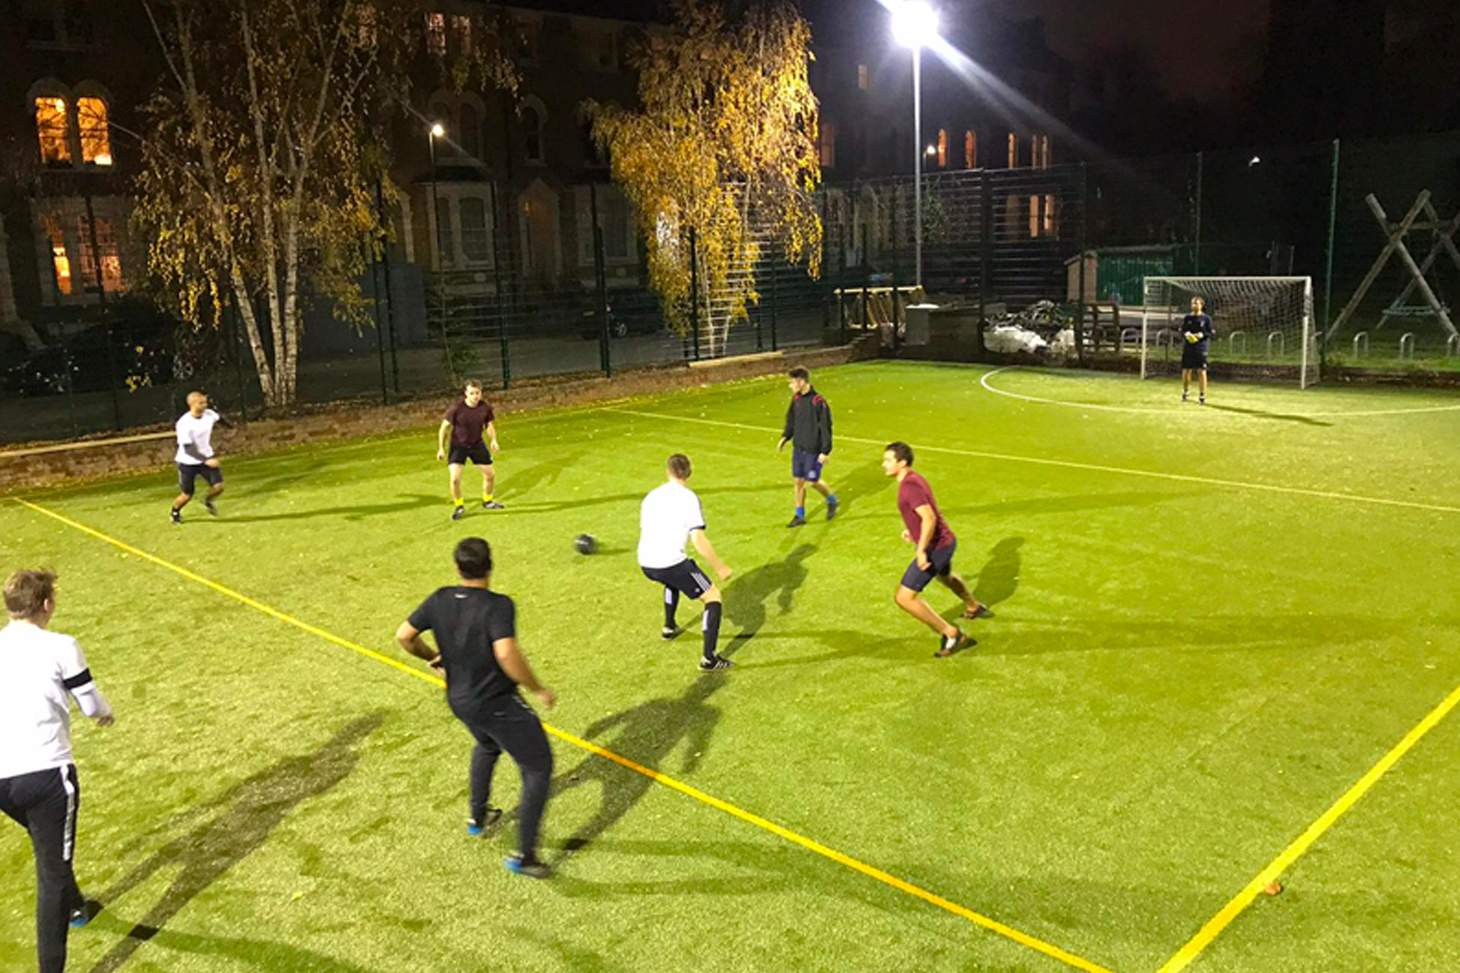 Max Roach Adventure Playground 5 a side | 3G Astroturf football pitch